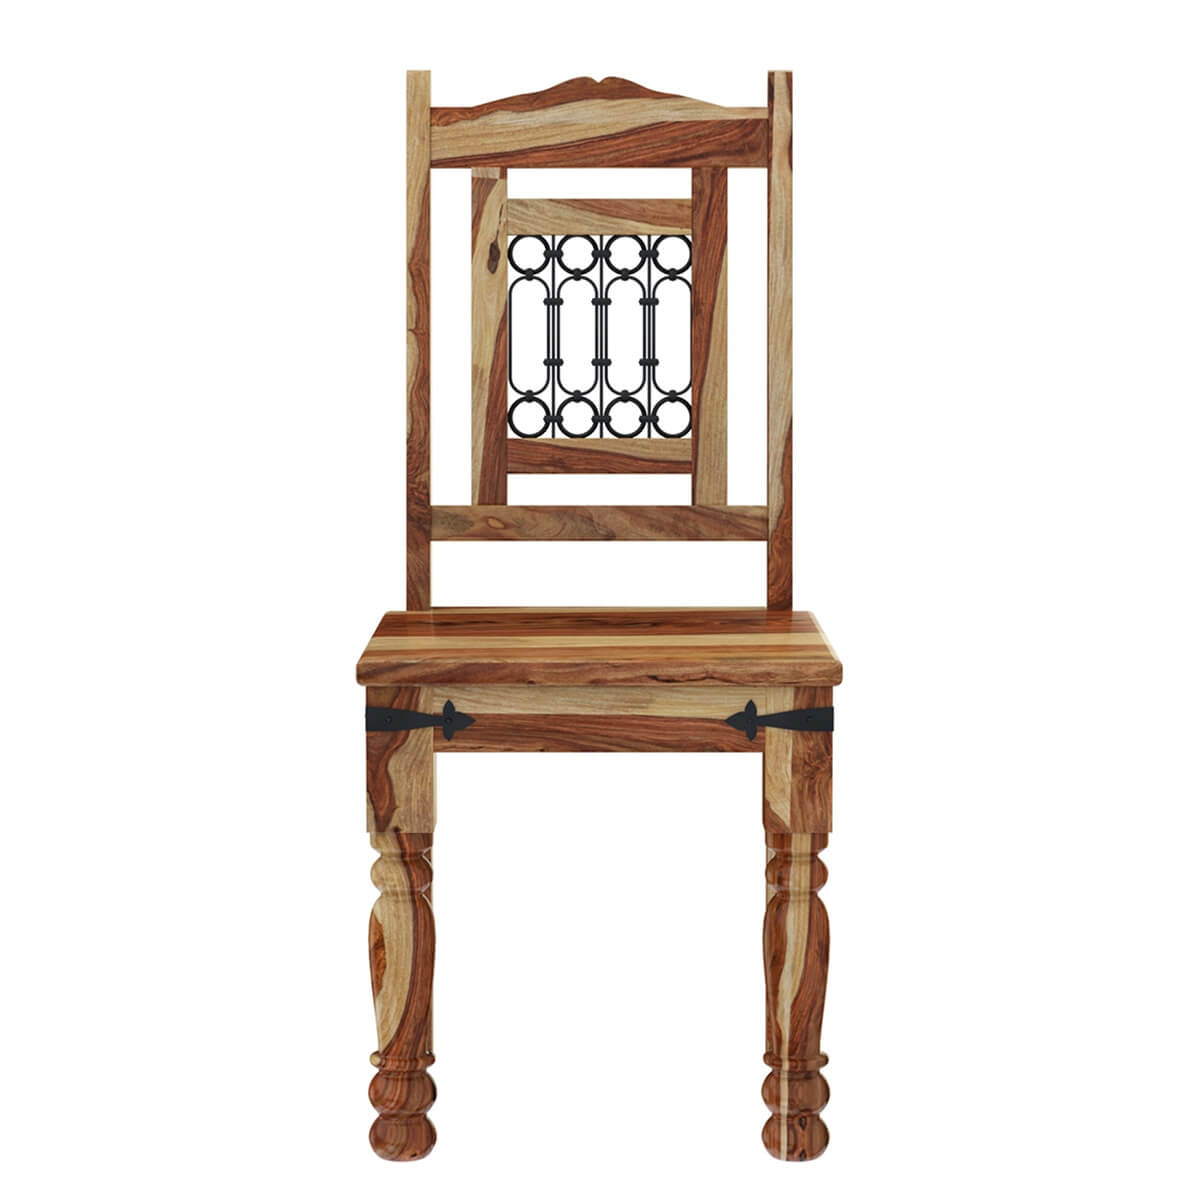 Peoria solid wood wrought iron rustic kitchen dining chair for Iron furniture